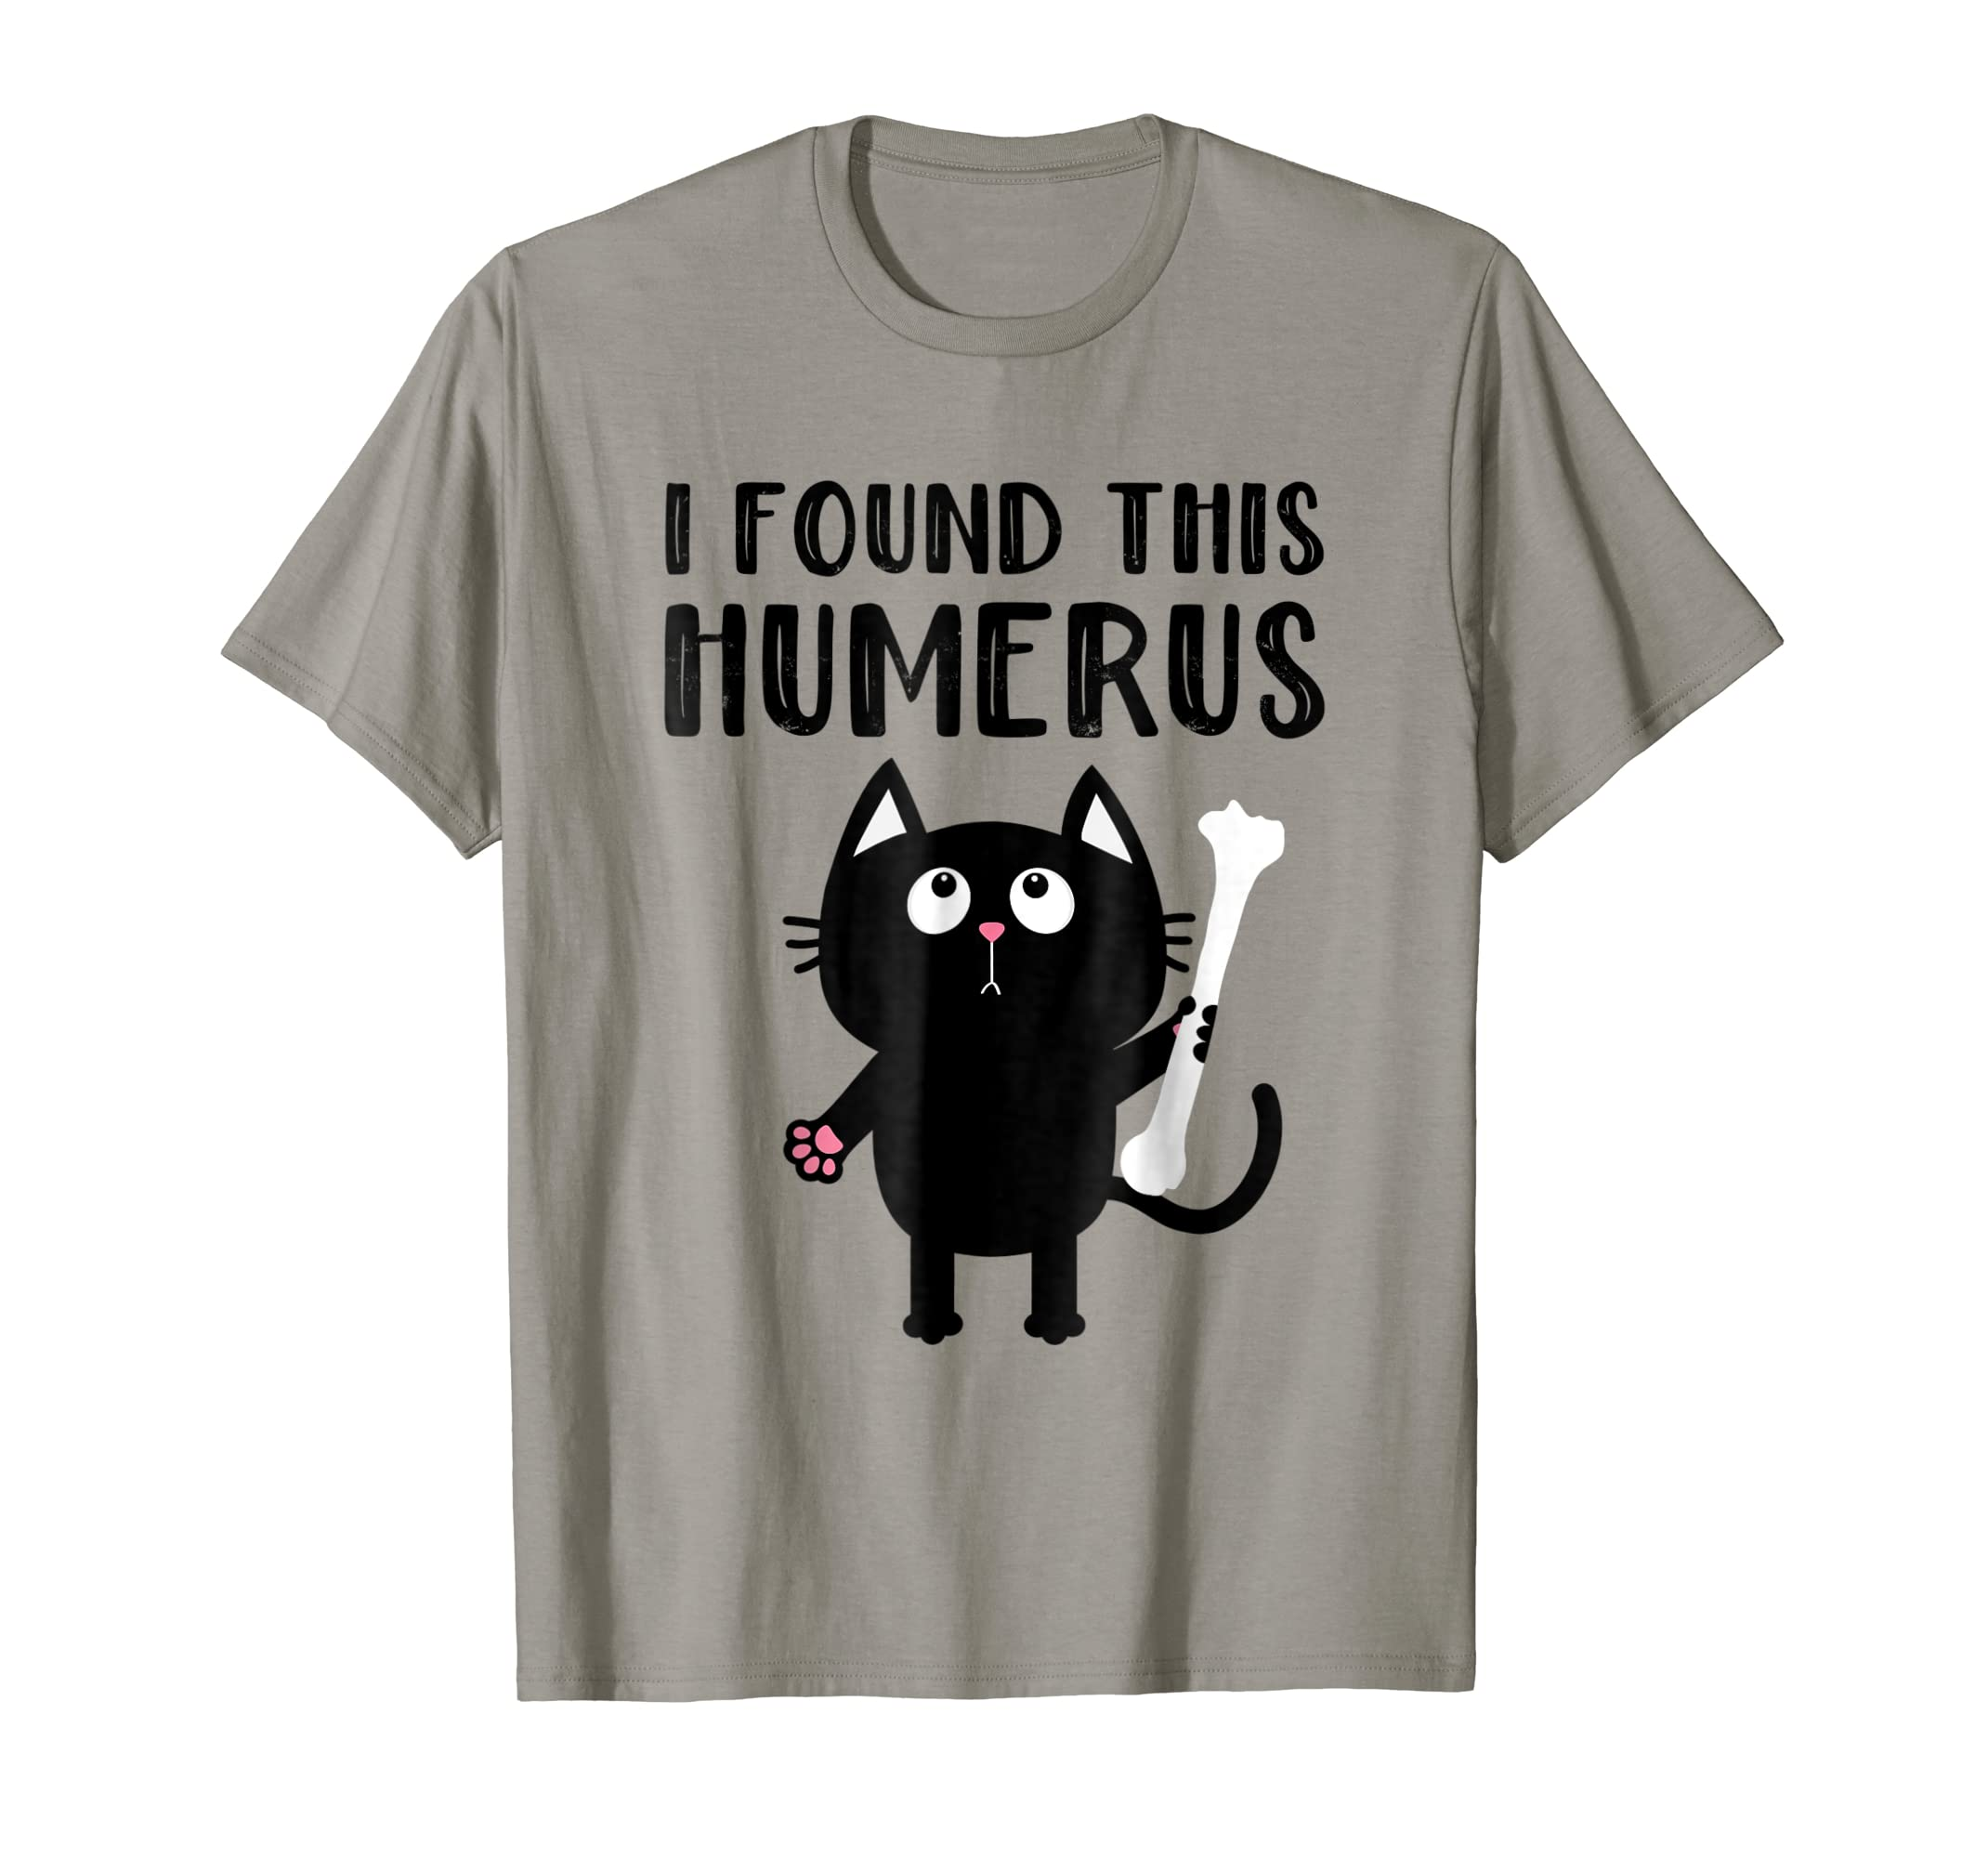 f519ae5d I Found This Humerus - Funny Cat Tee For Men Women And Kids Hoodie  Sweatshirt - Depotees